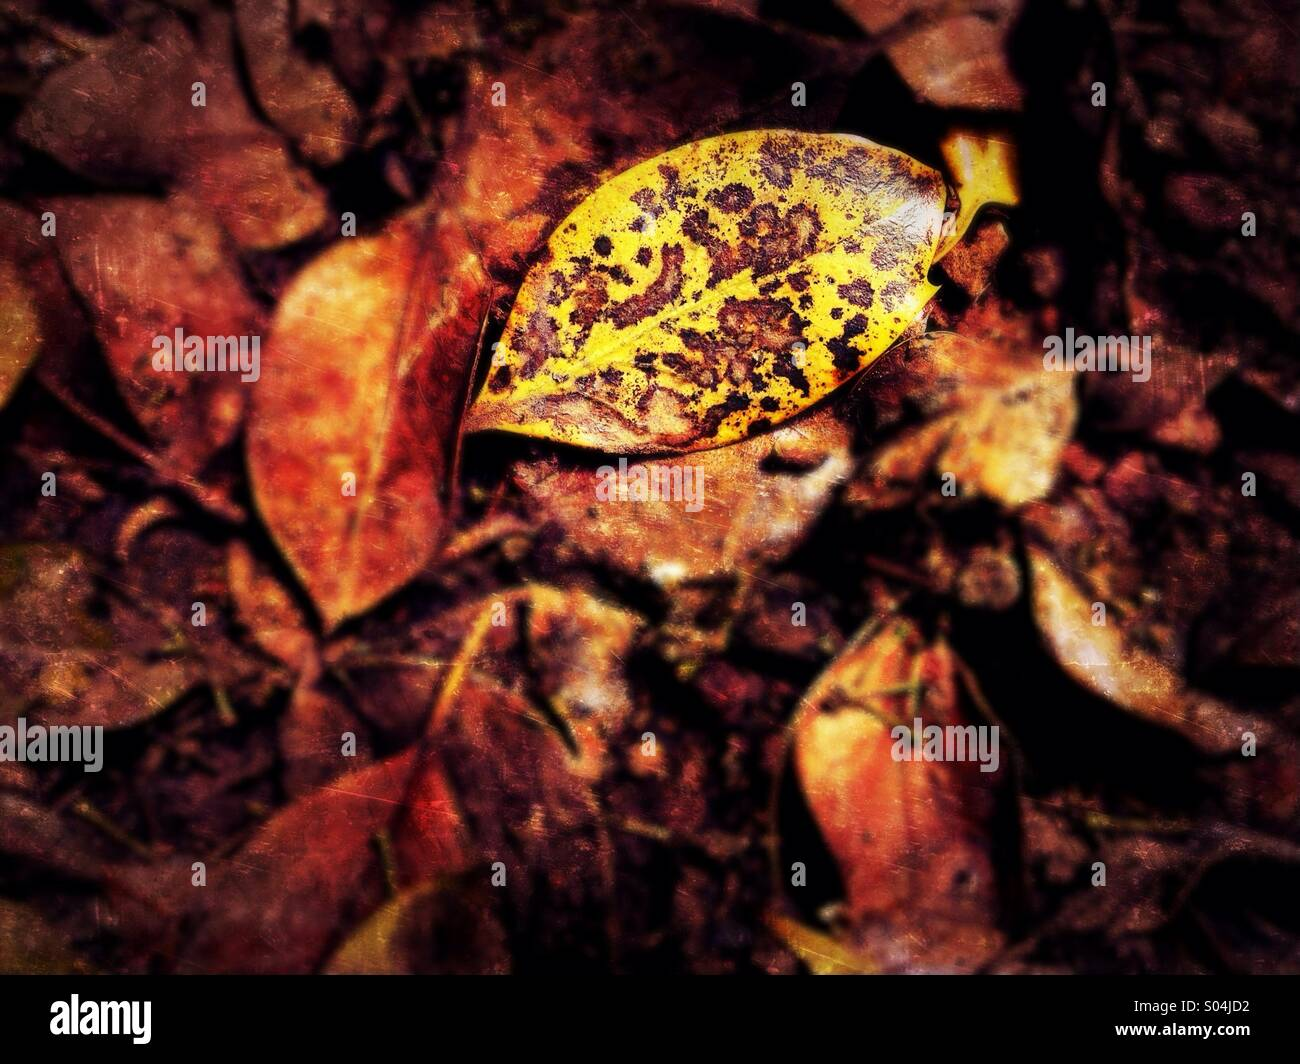 Decaying leaf - Stock Image